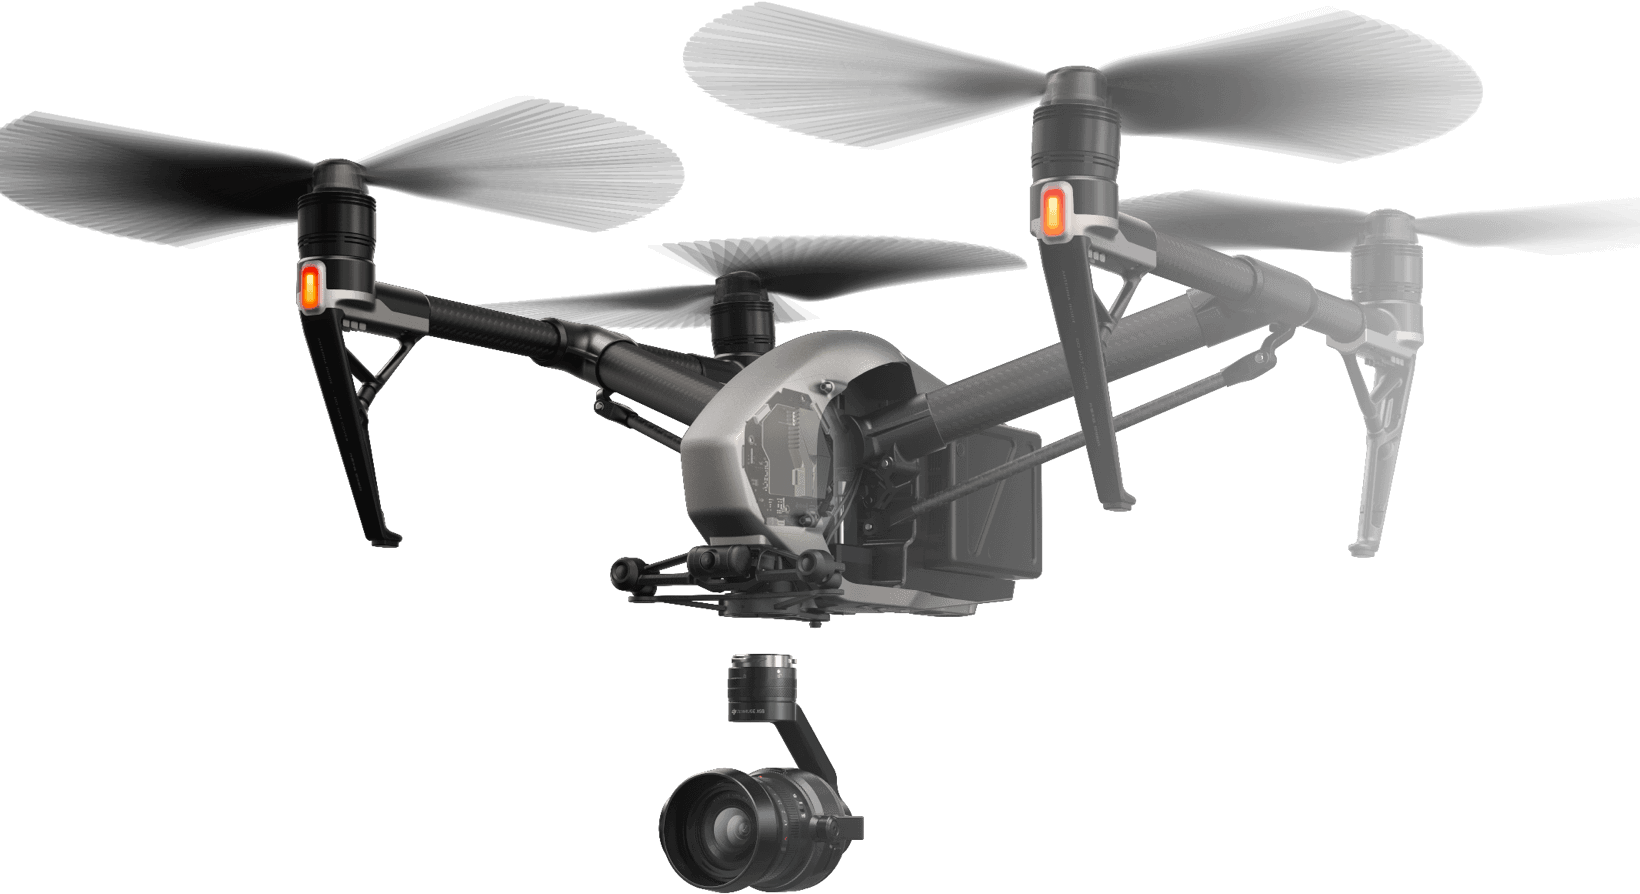 https://gironde-image.fr/wp-content/uploads/2019/07/inspire-2-drone.png